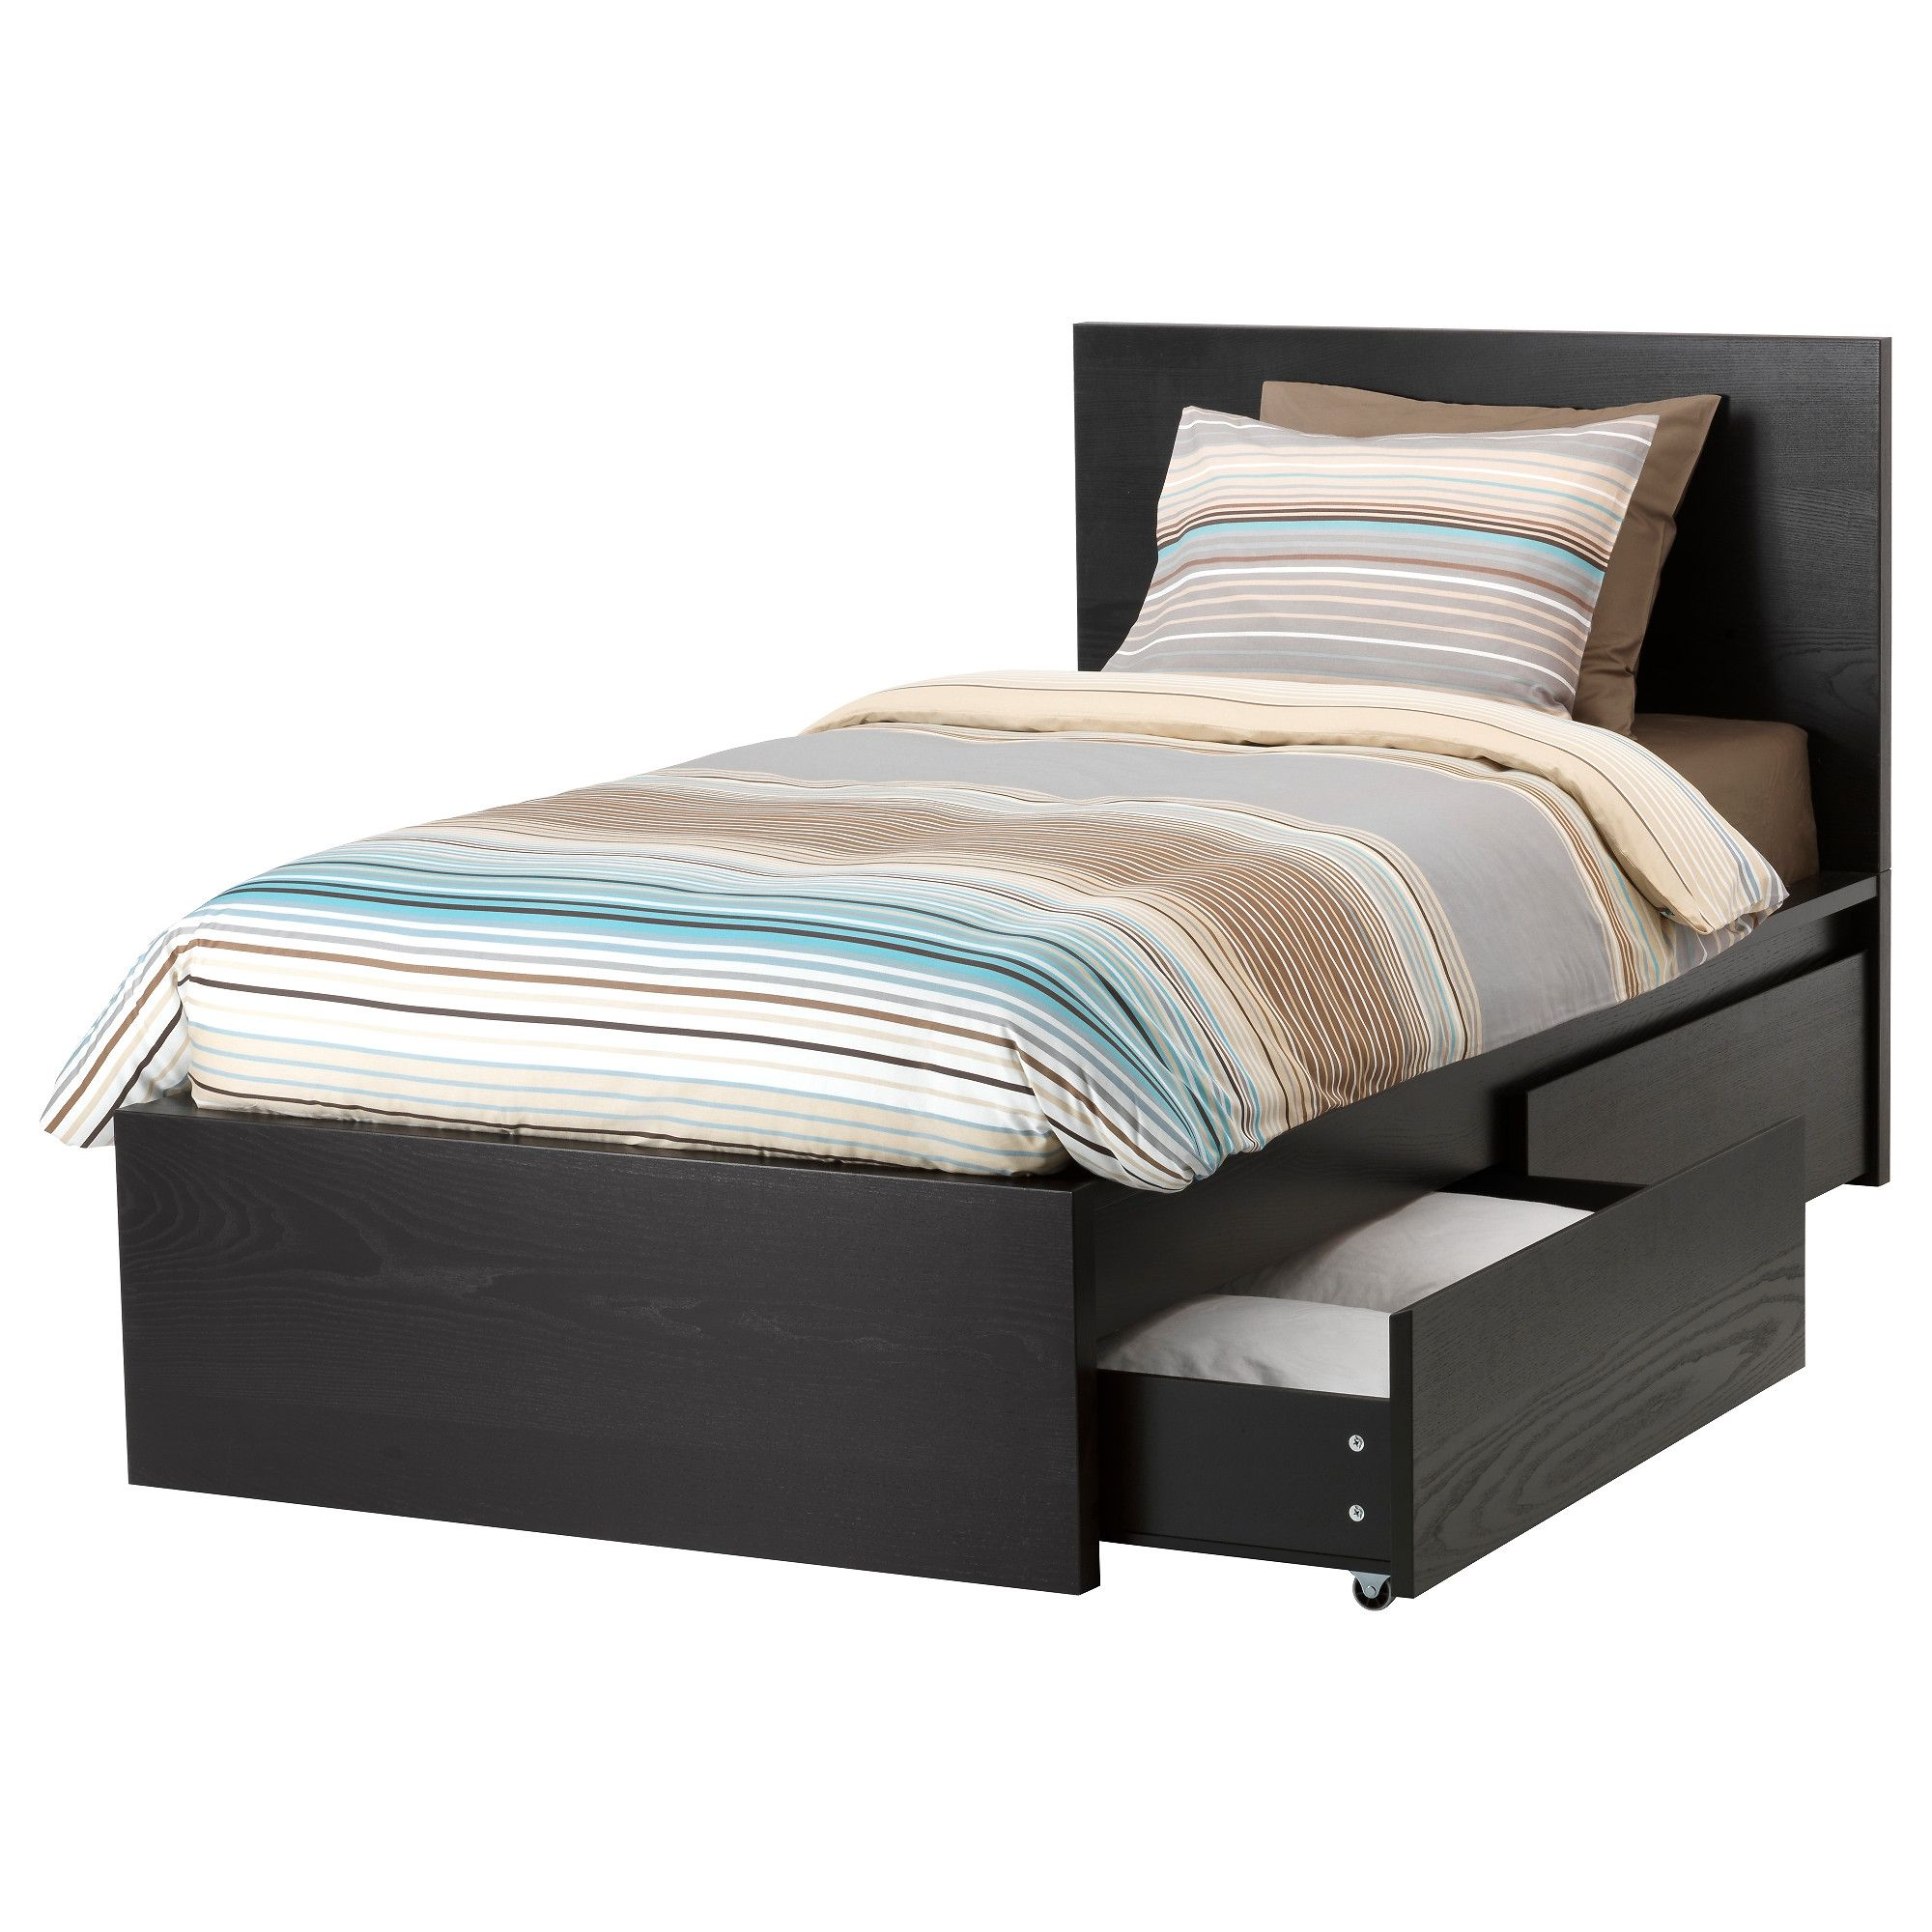 Box Bed Frame With Drawers | http://ezserver.us | Pinterest